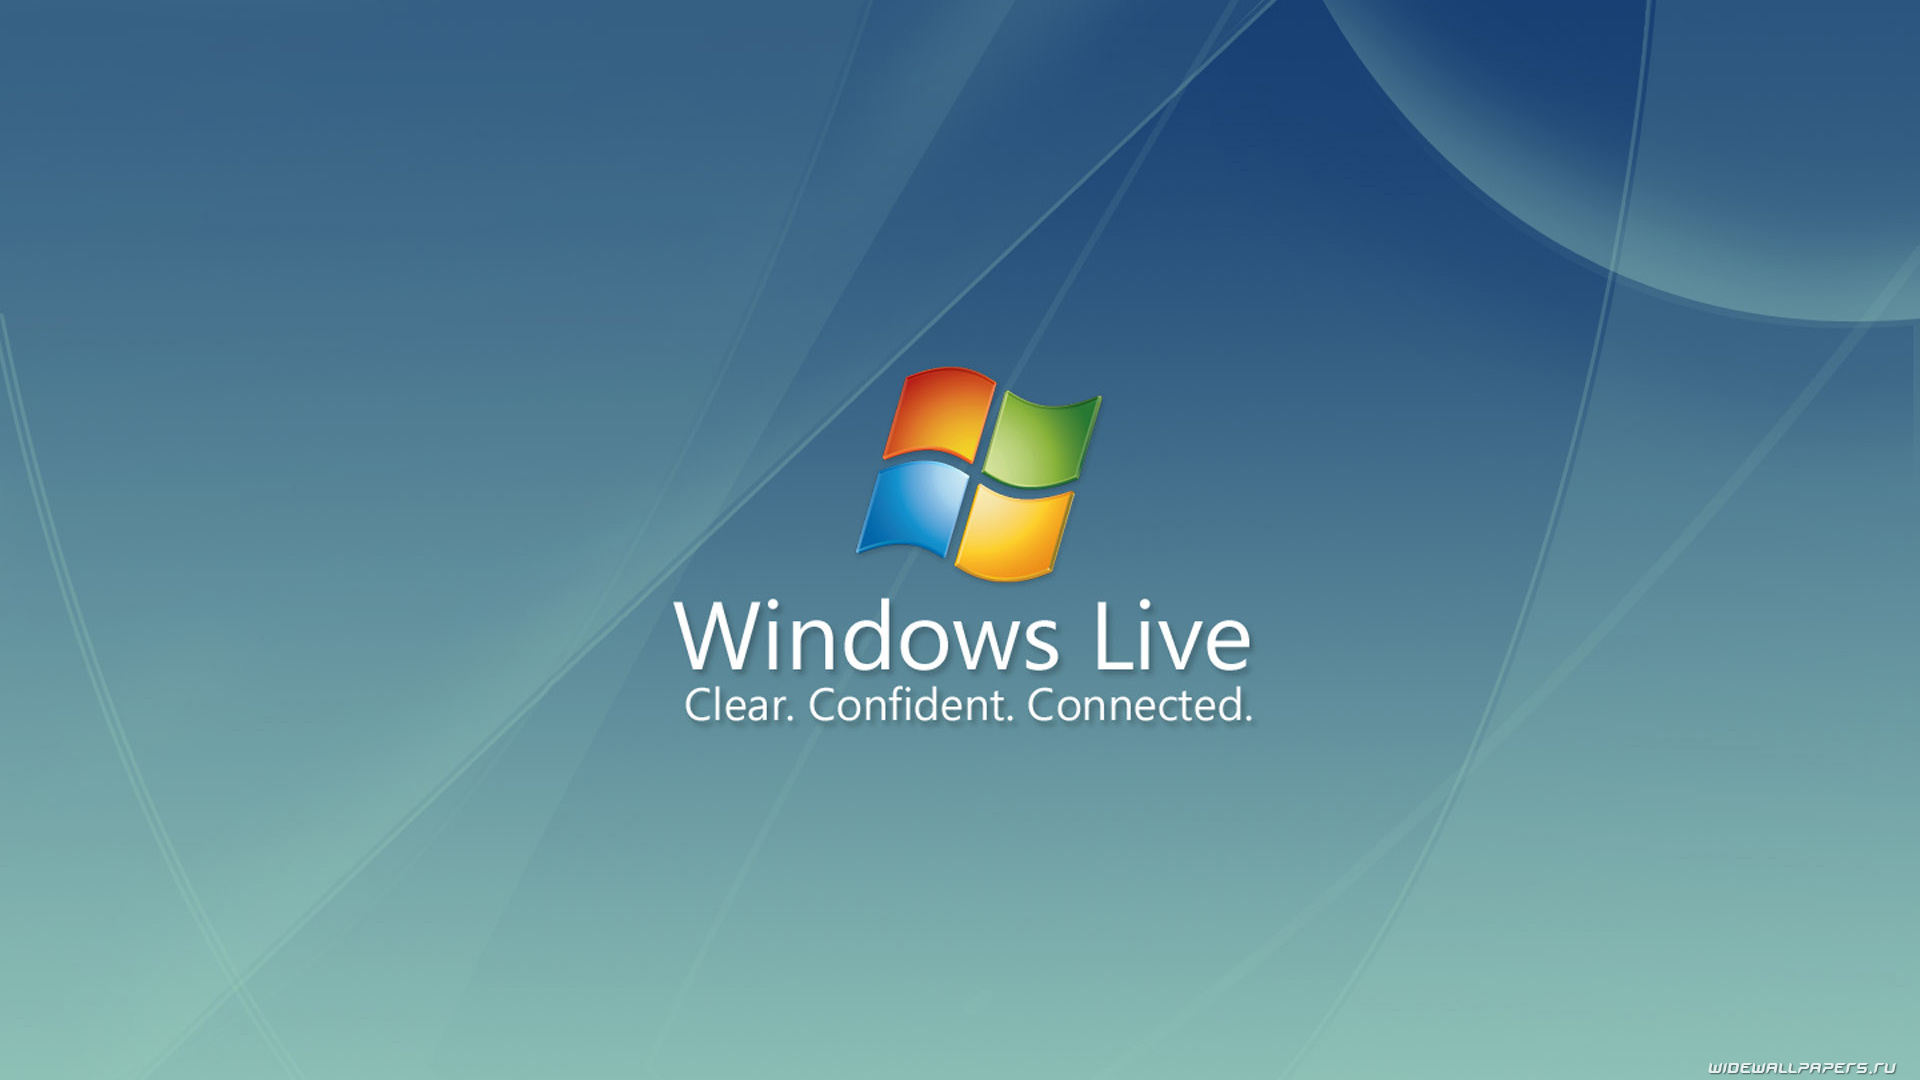 Free Download Windows Live Wallpapers Hd Wallpaper Of